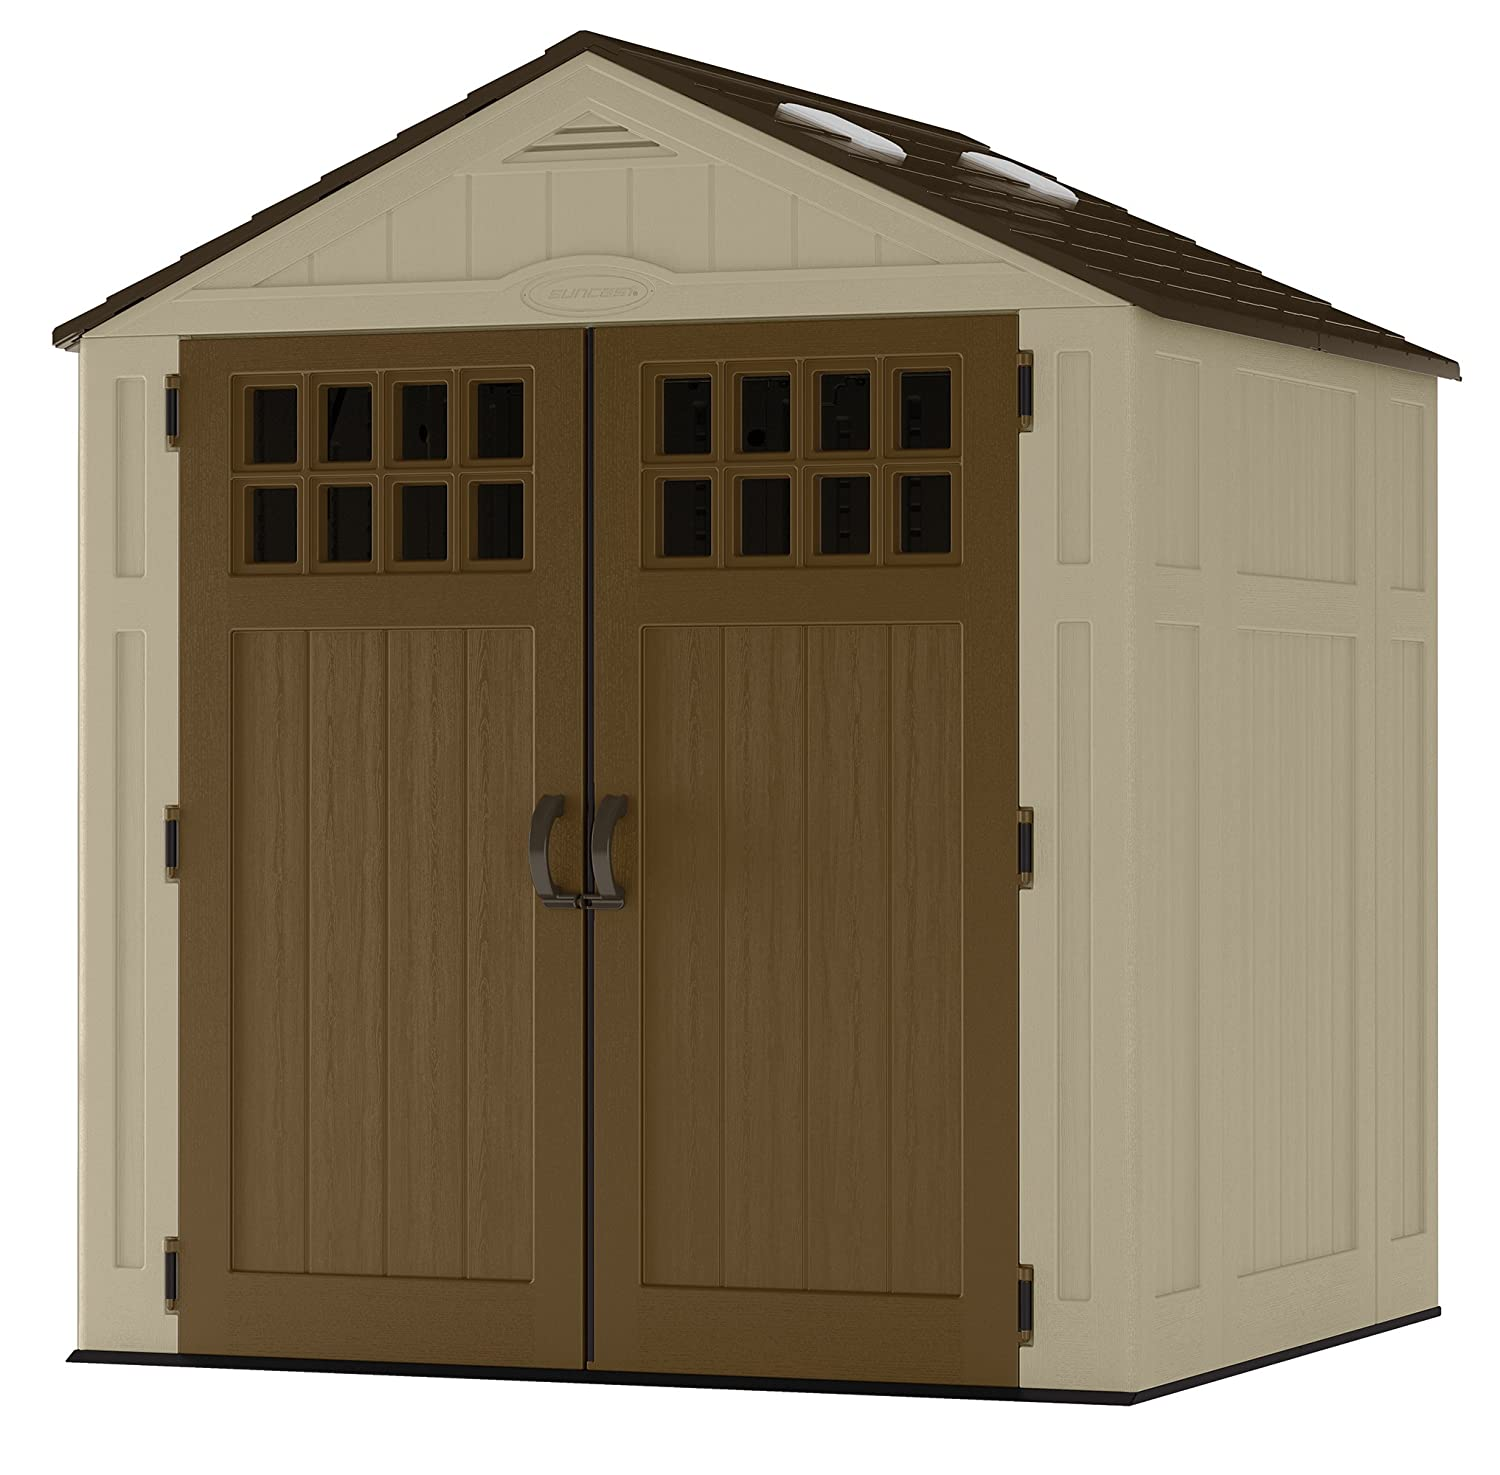 amazoncom suncast bms6510d 6 feet by 5 feet blow molded storage shed garden outdoor